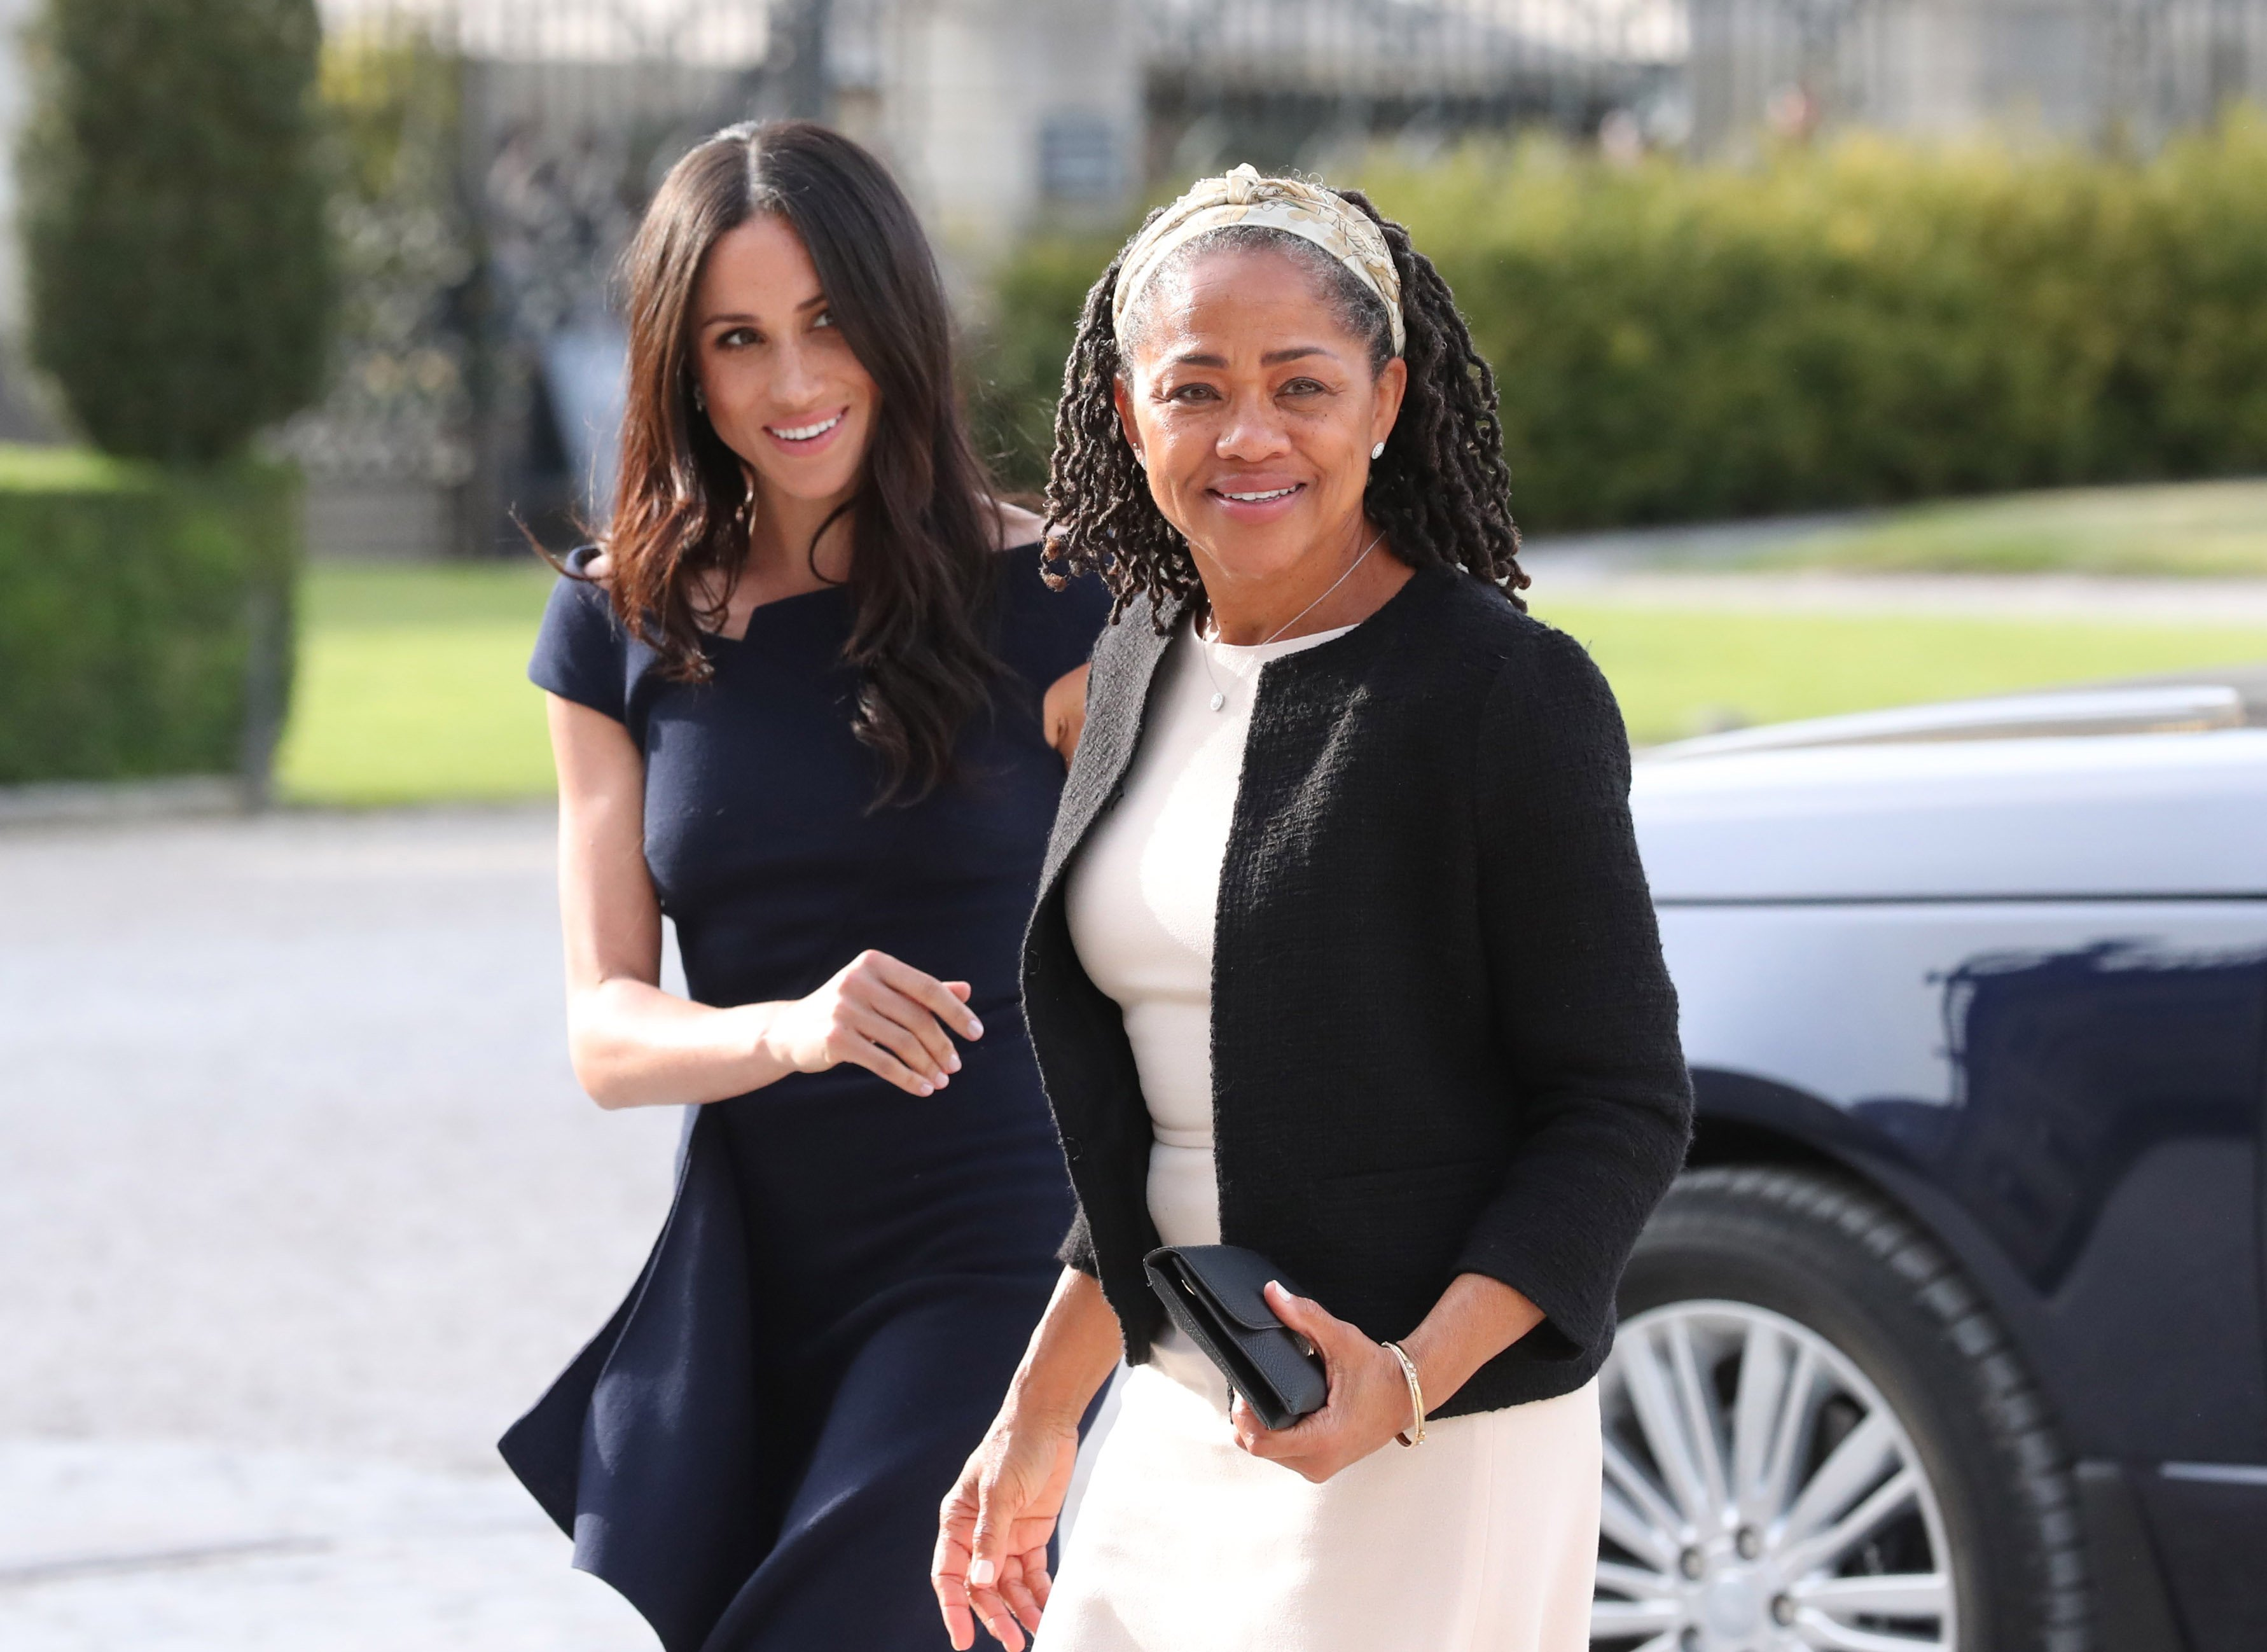 Meghan Markle and her mother, Doria Ragland arrive at Cliveden House Hotel on May 18, 2018 in Berkshire, England. | Source: Getty Images.